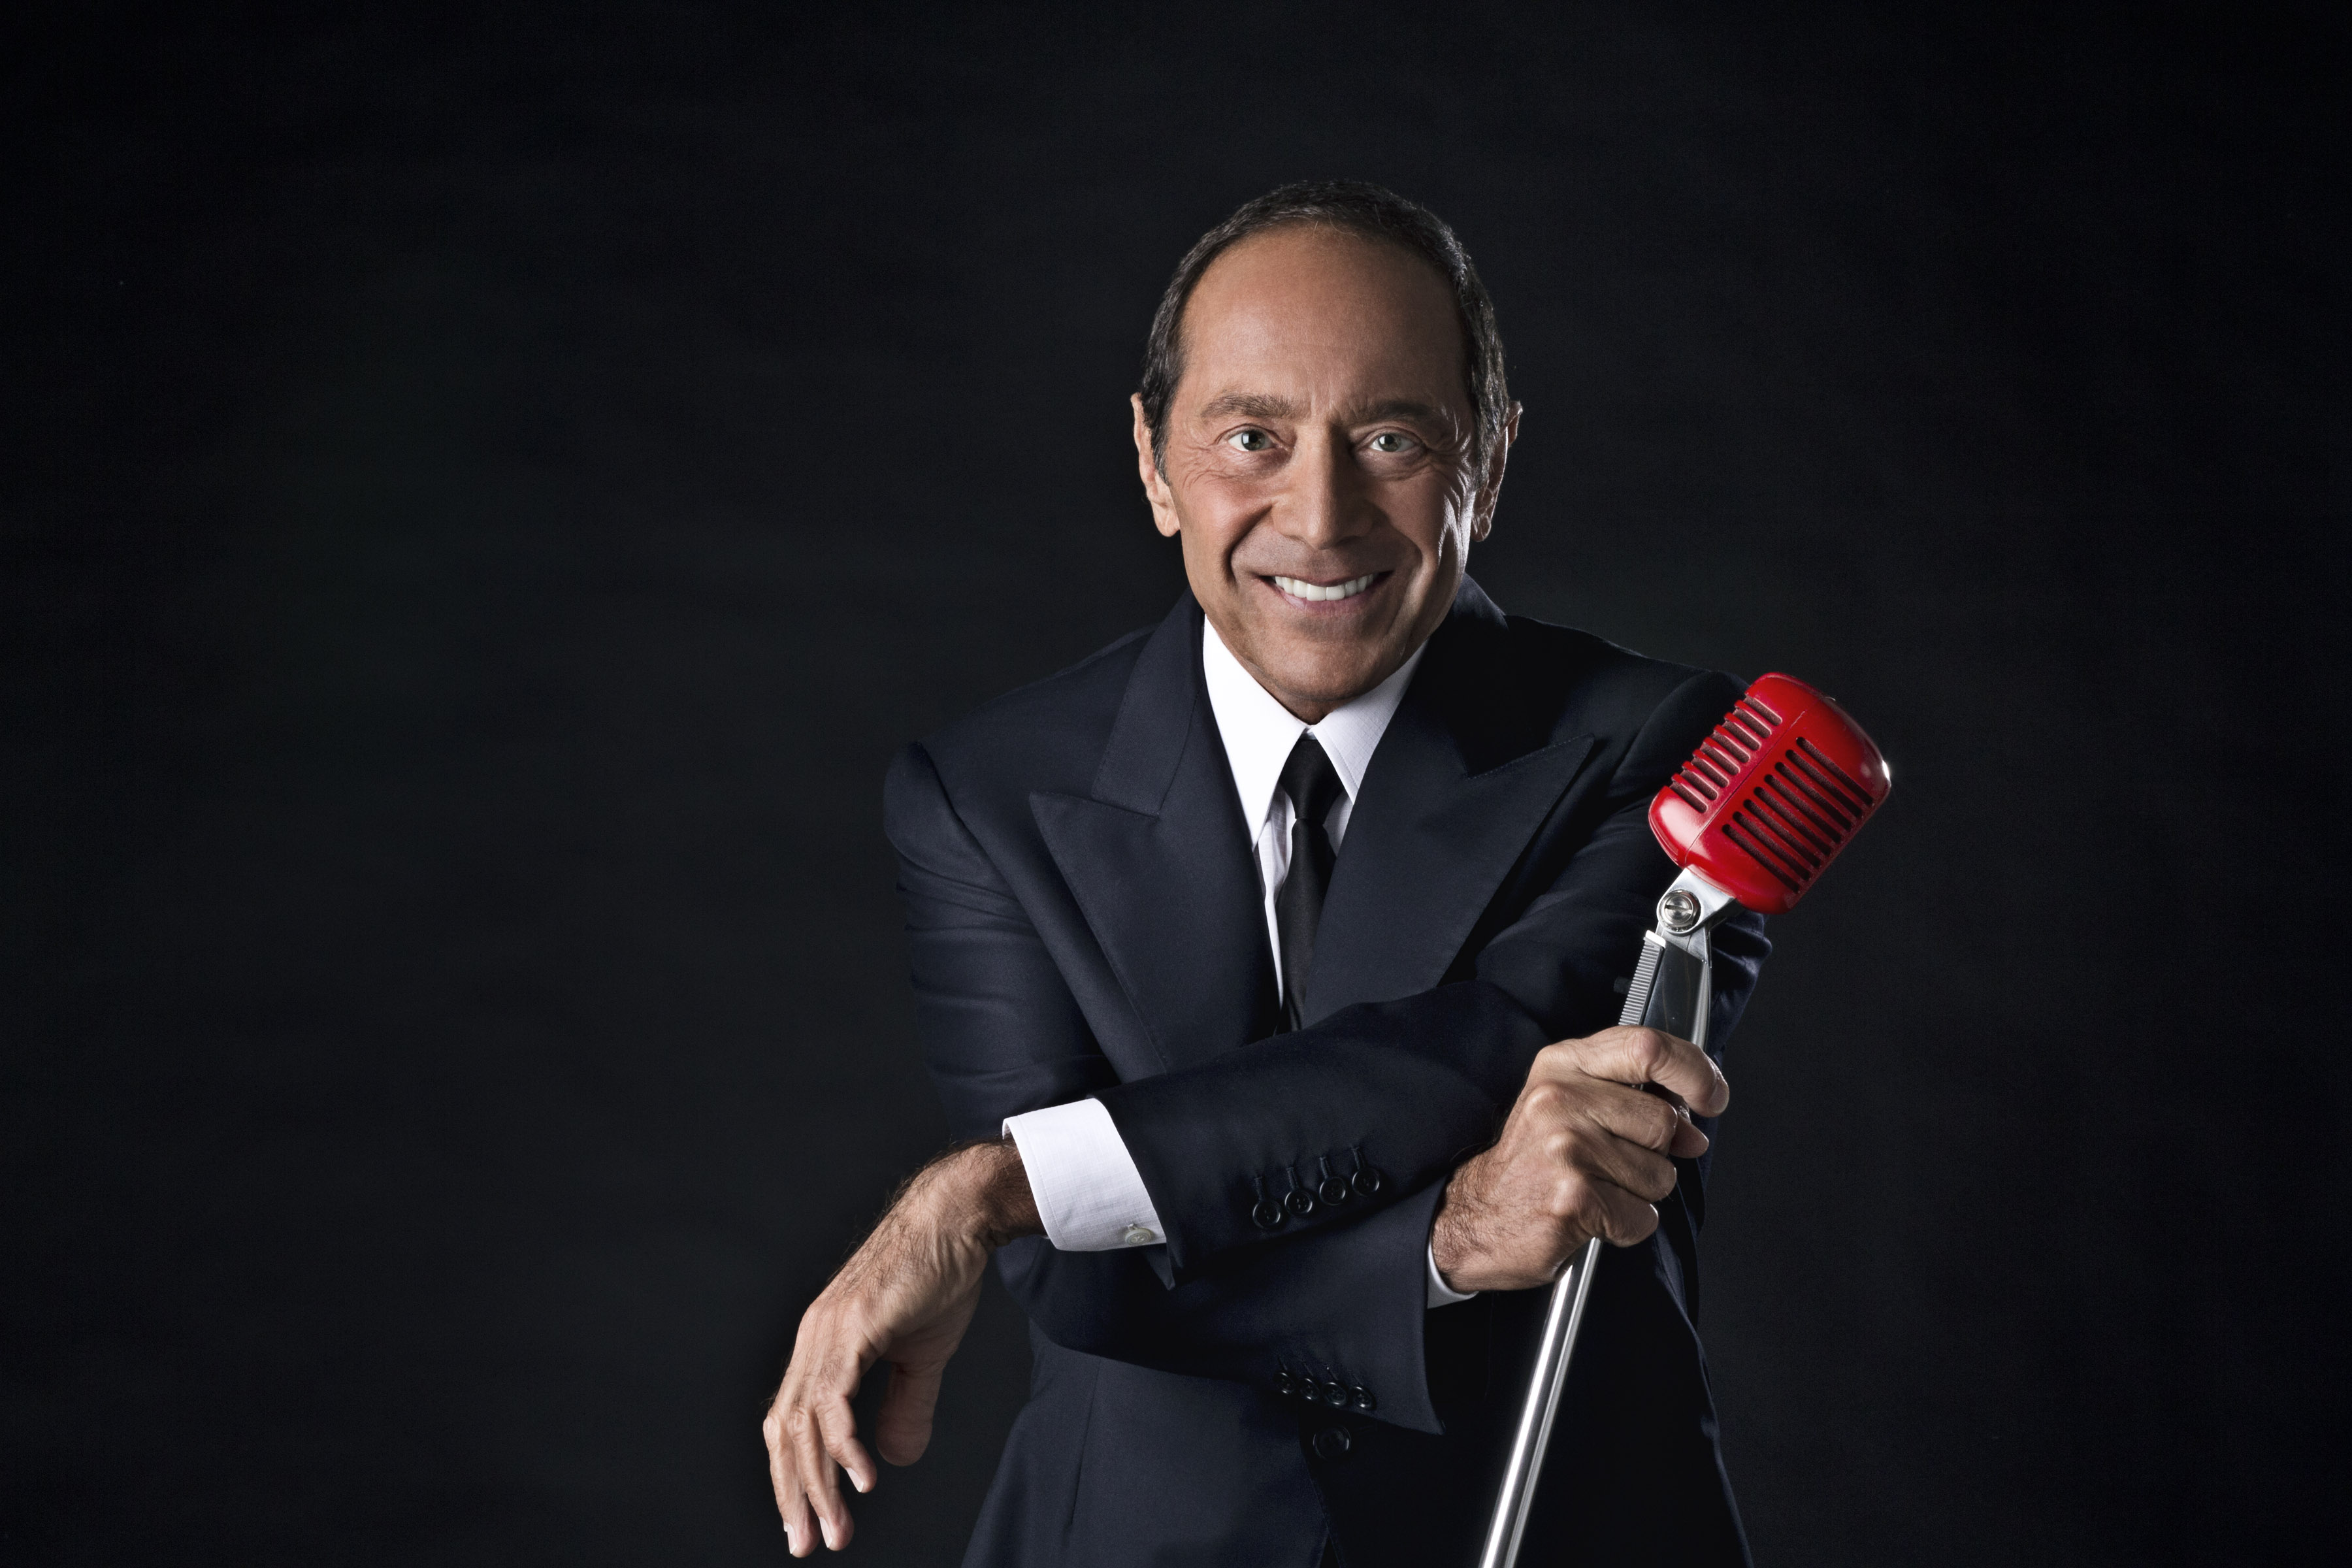 paul anka adam and eve